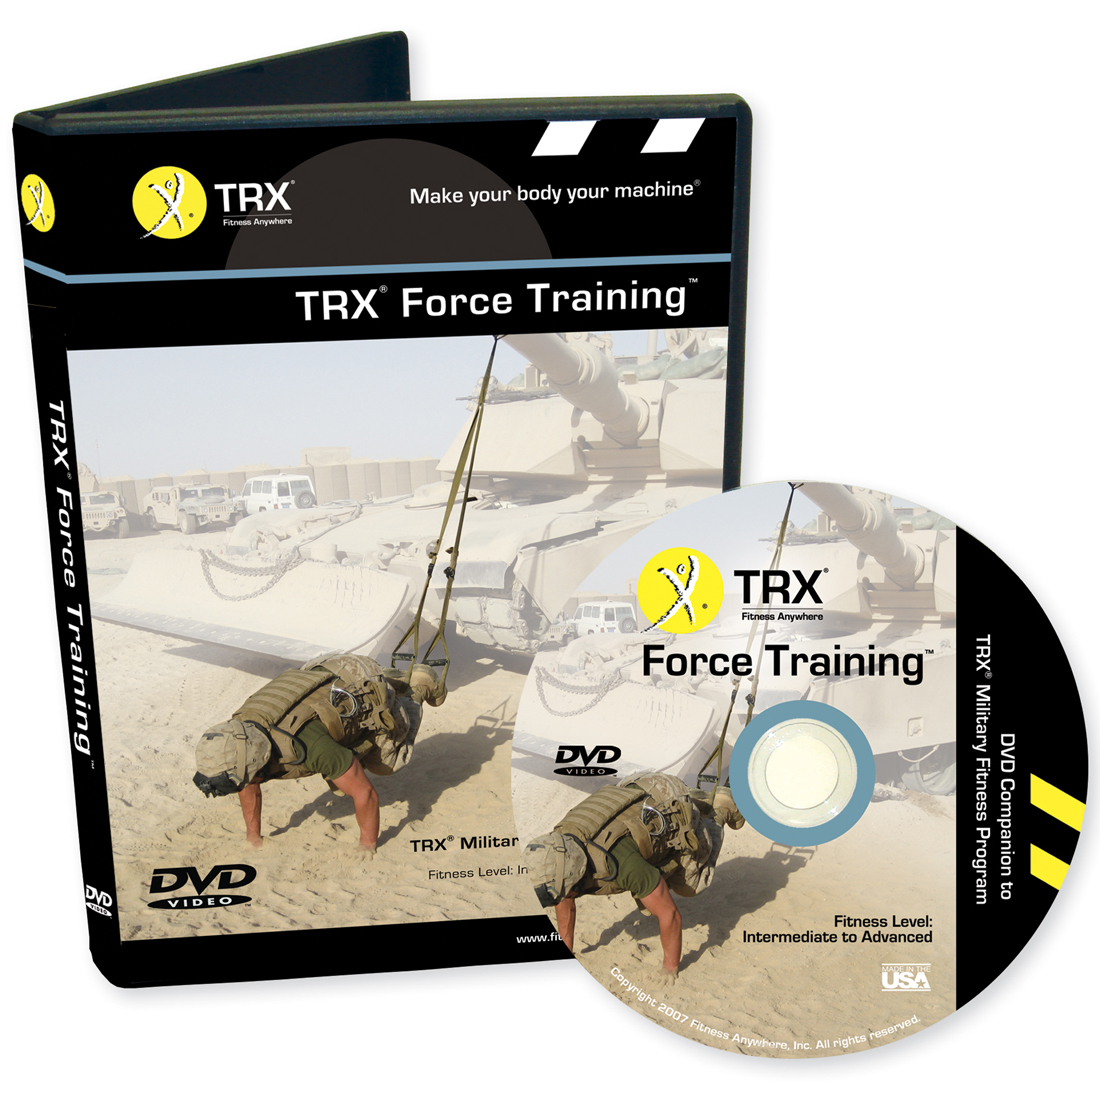 trx military force training fitness dvd and workout guide rh ebay com TRX Demo trx force training guide pdf download free